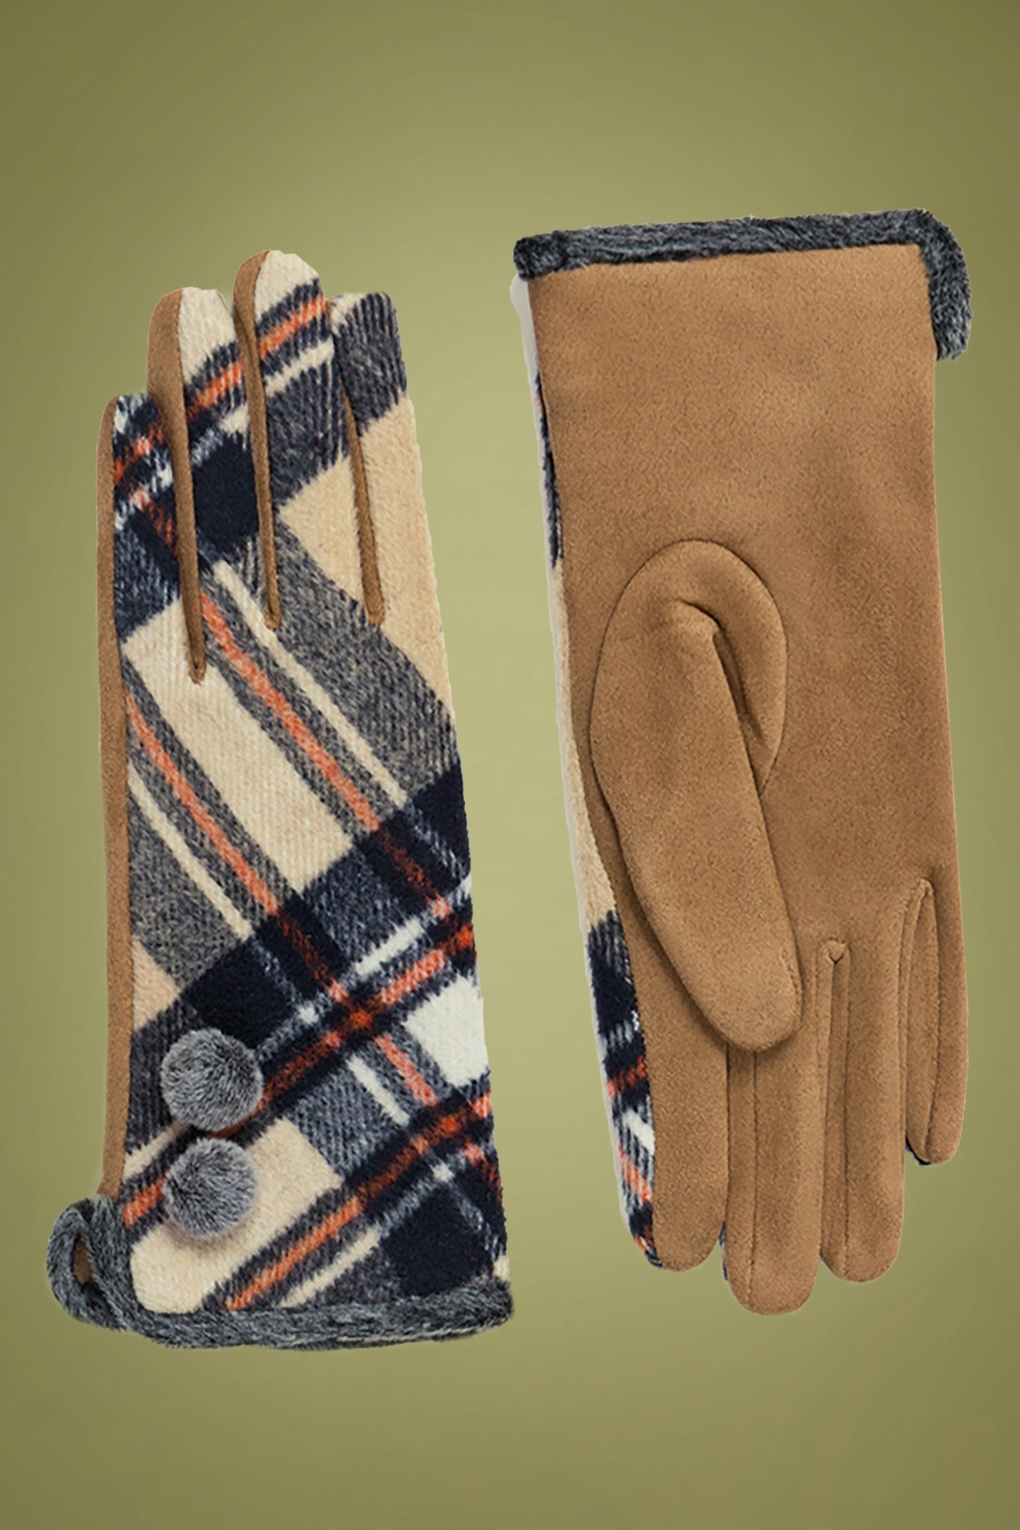 Vintage Style Gloves- Long, Wrist, Evening, Day, Leather, Lace 50s Bonnie Tartan Gloves in Beige £16.12 AT vintagedancer.com